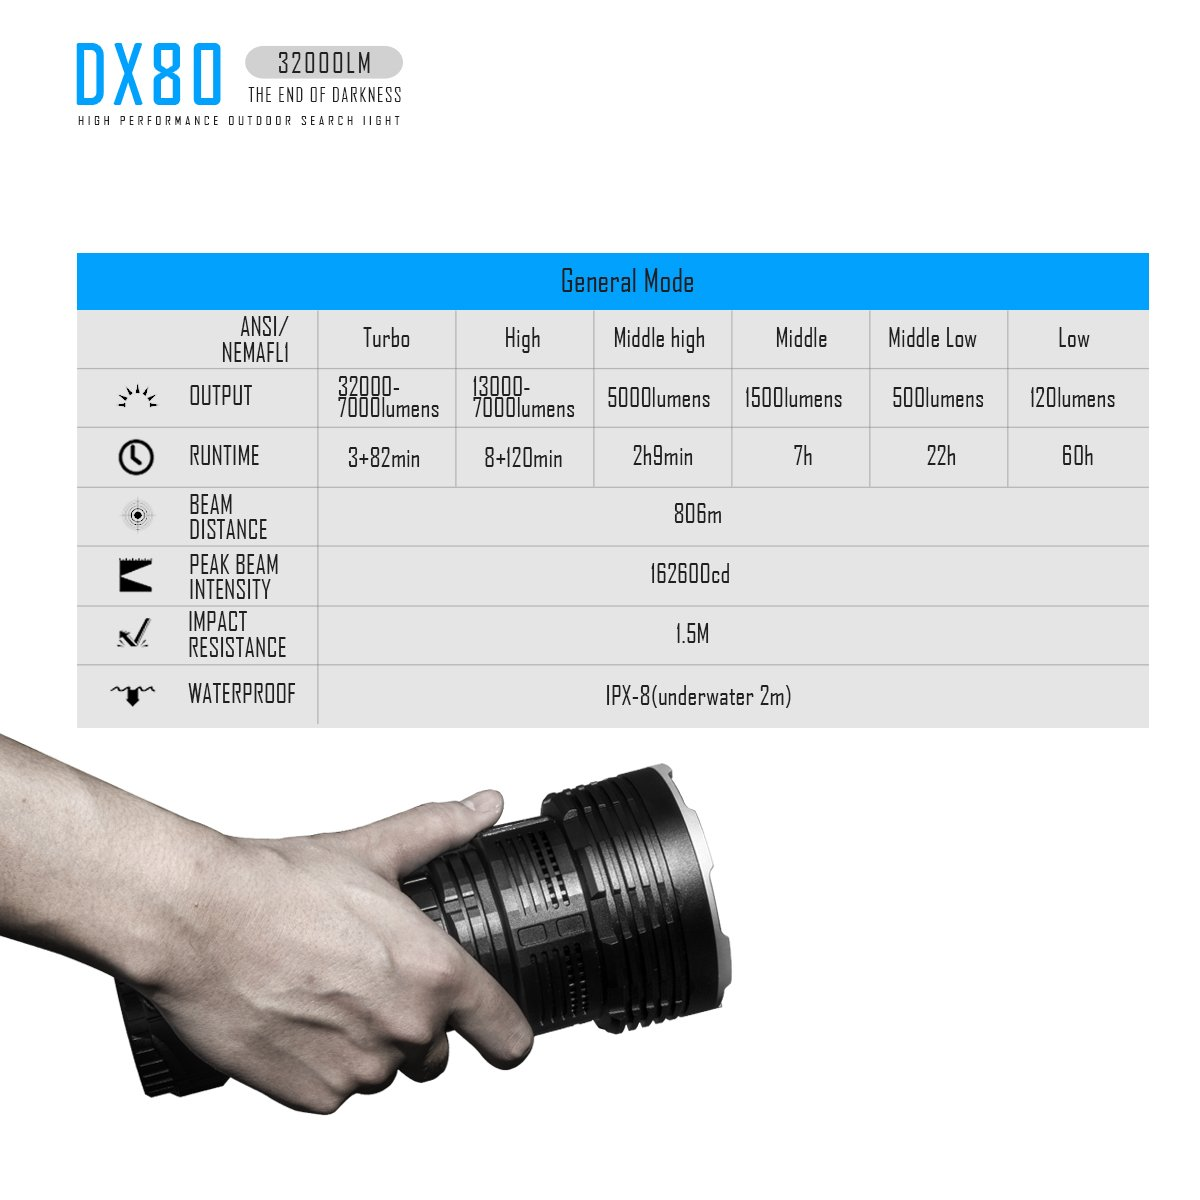 IMALENT DX80 8PCS Cree XHP70 32000lm The Most Powerful LED Flashlight,Hand-held,To Use For Emergency, Travel, Home Lighting, Late Night Out, Flood Lighting, To Meet A Variety Of Lighting Needs by IMALENT (Image #7)